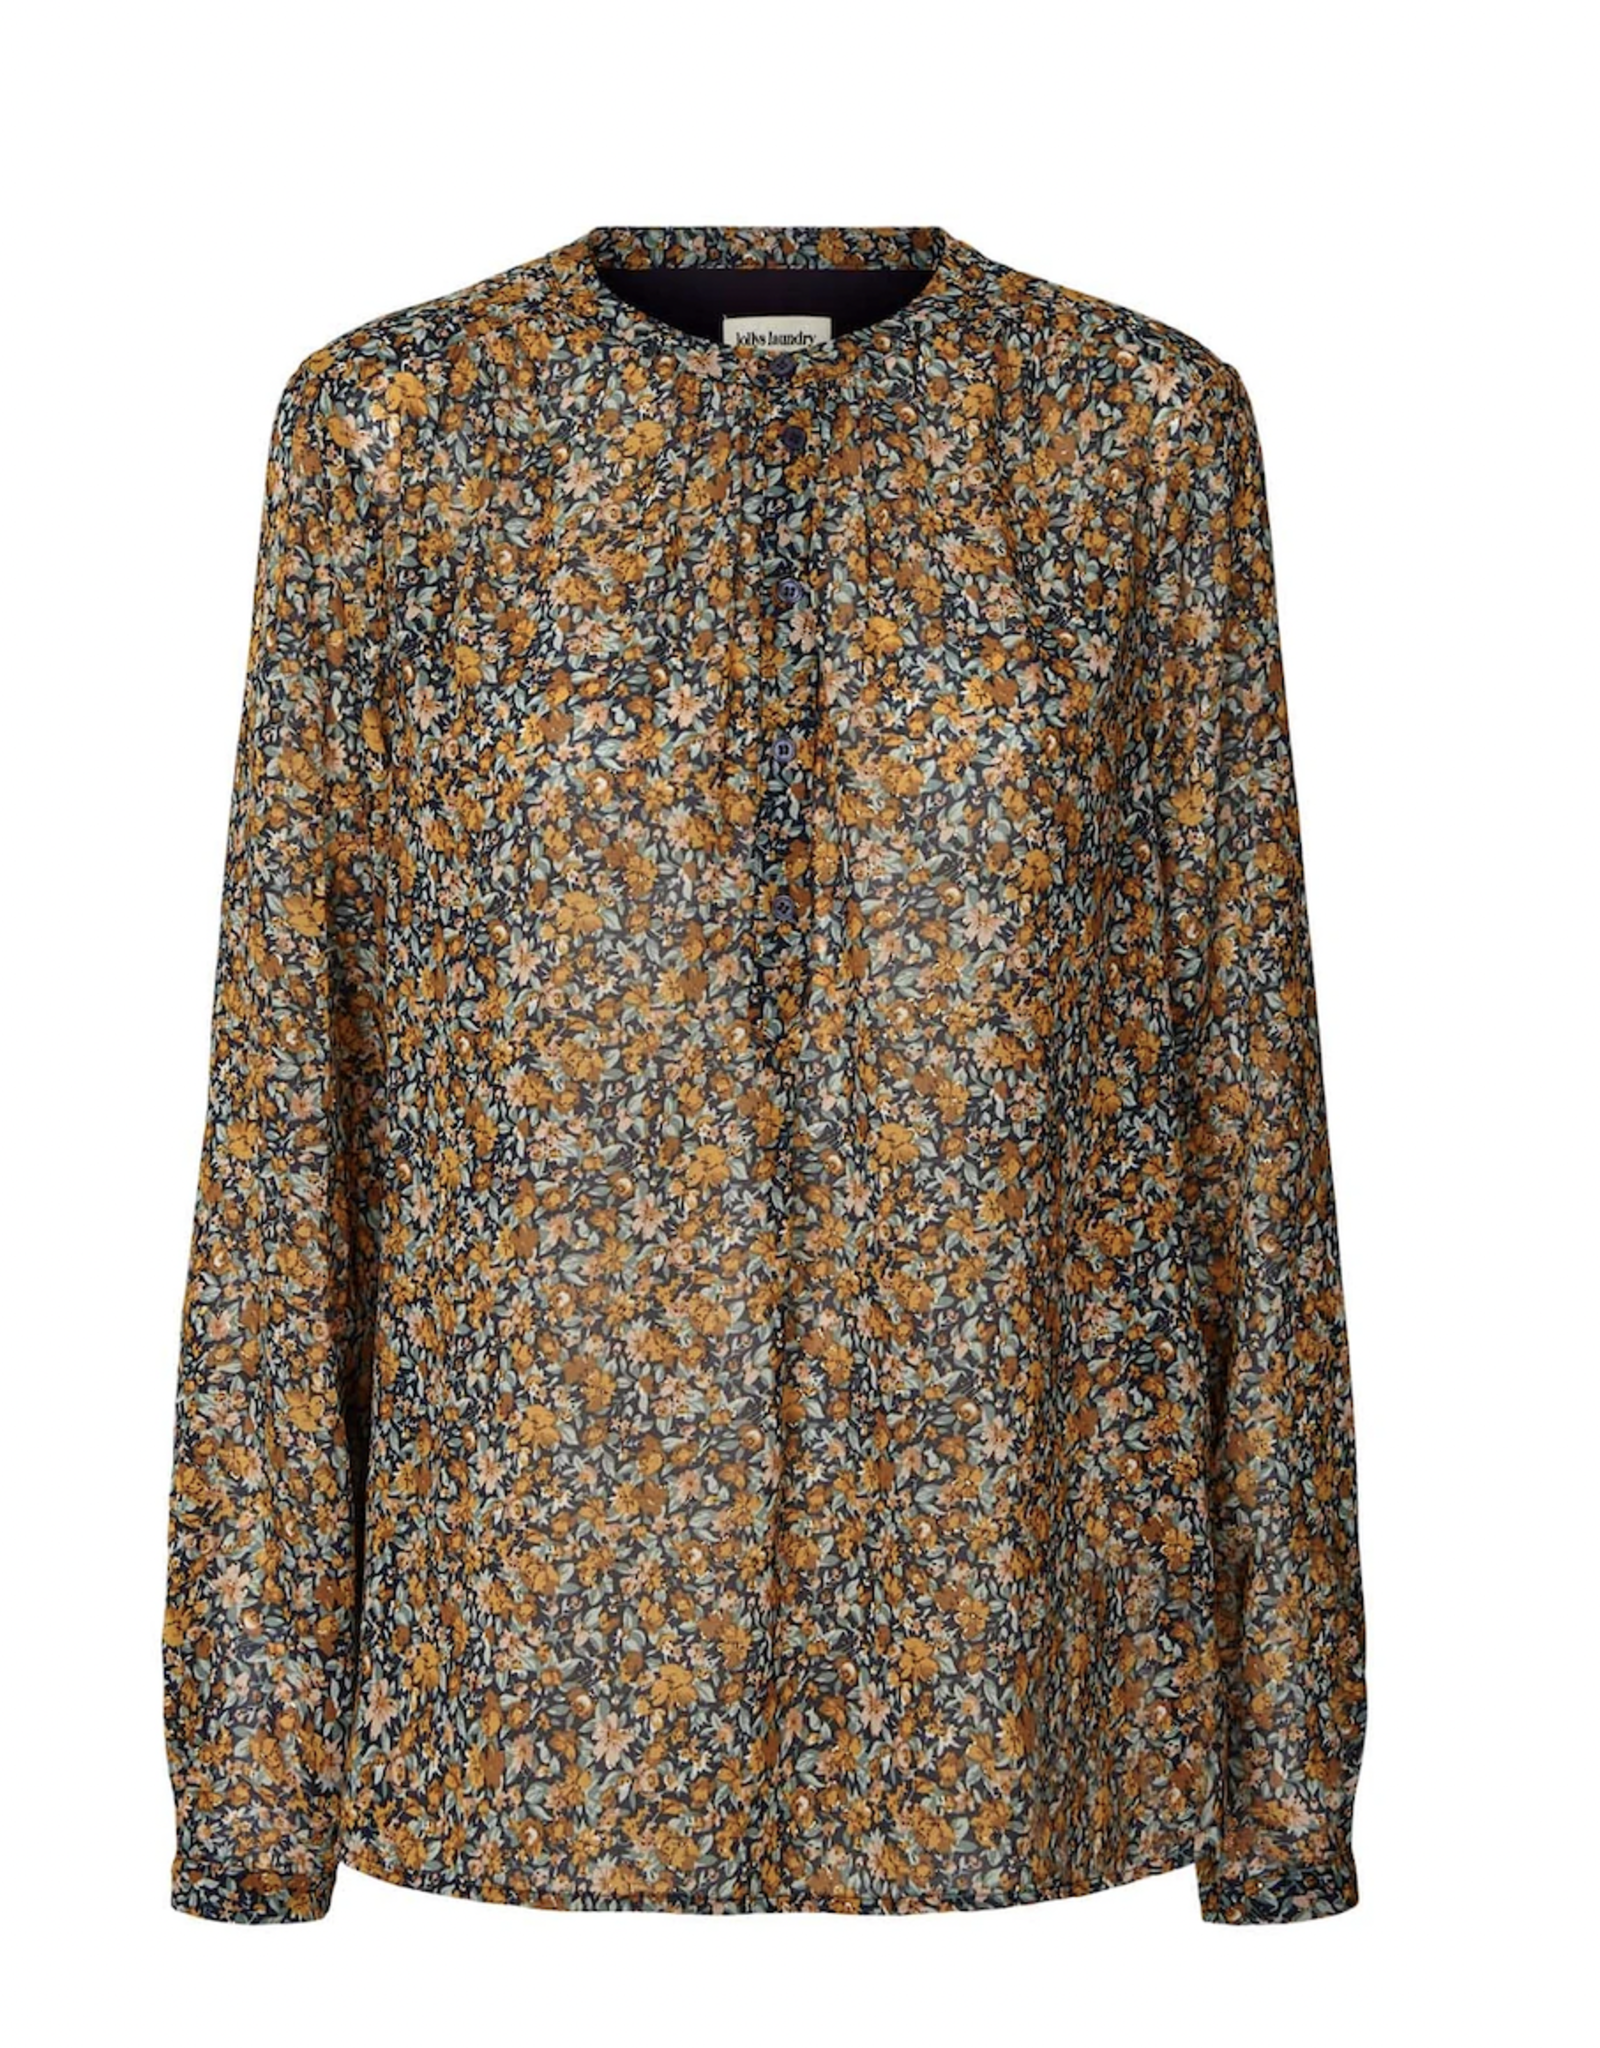 Lolly's Laundry Lolly's laundry - Singh shirt flower print